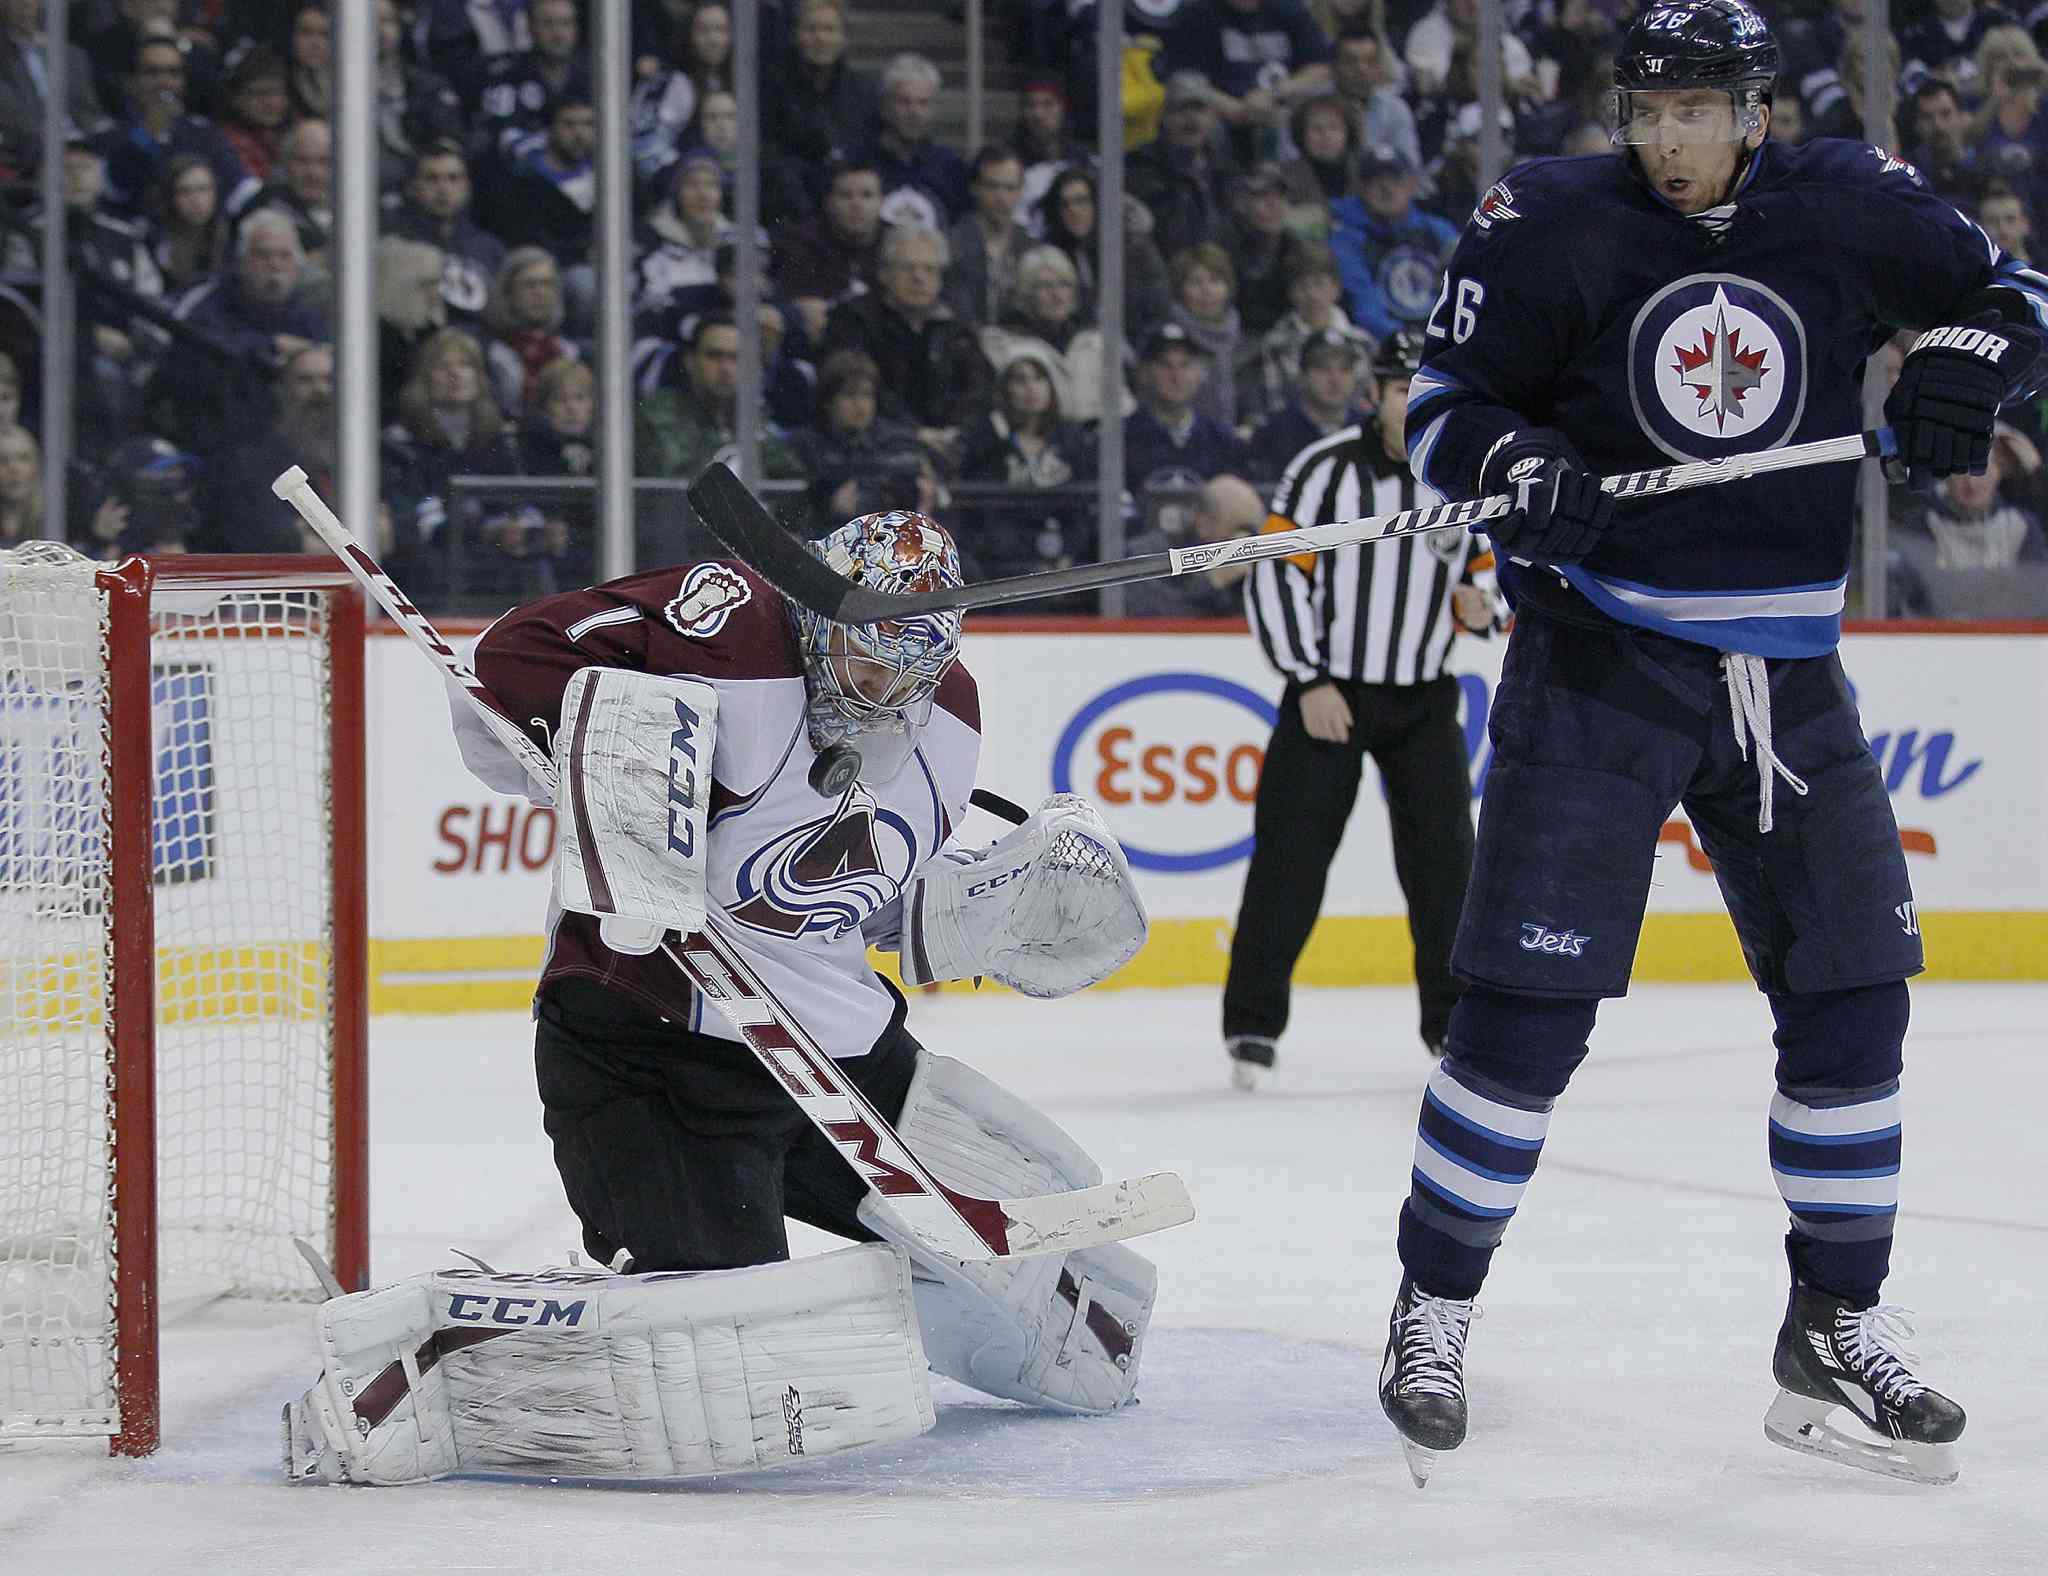 Blake Wheeler (right) tries a similar deflection in front of Varlamov during the second period.